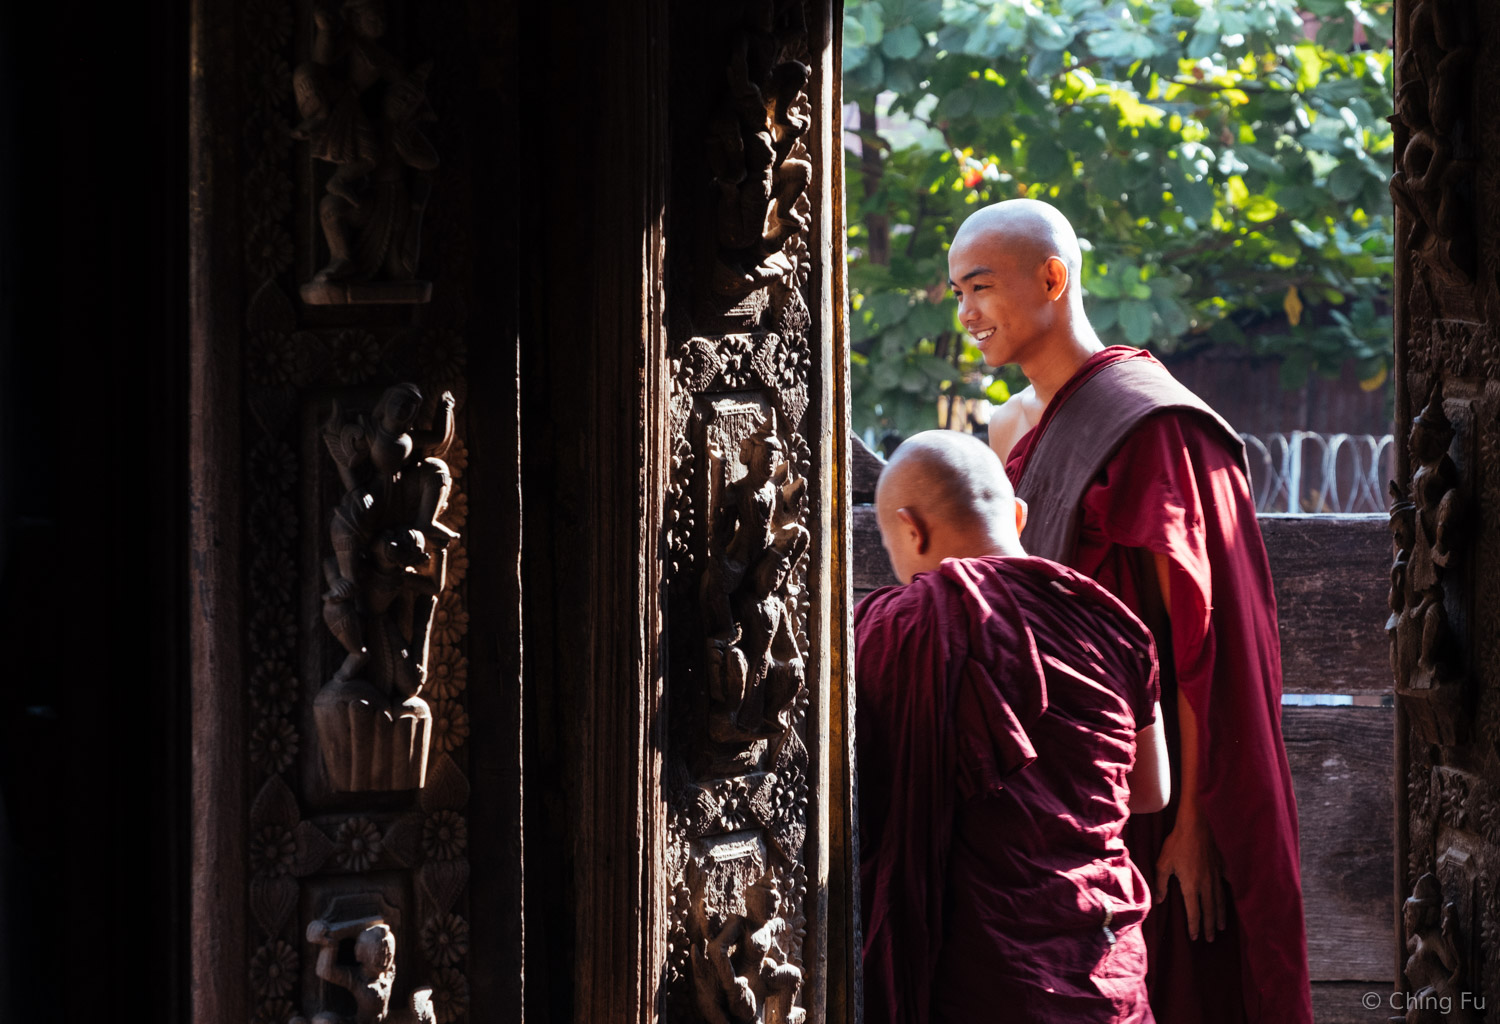 Two monks visiting the monastery.